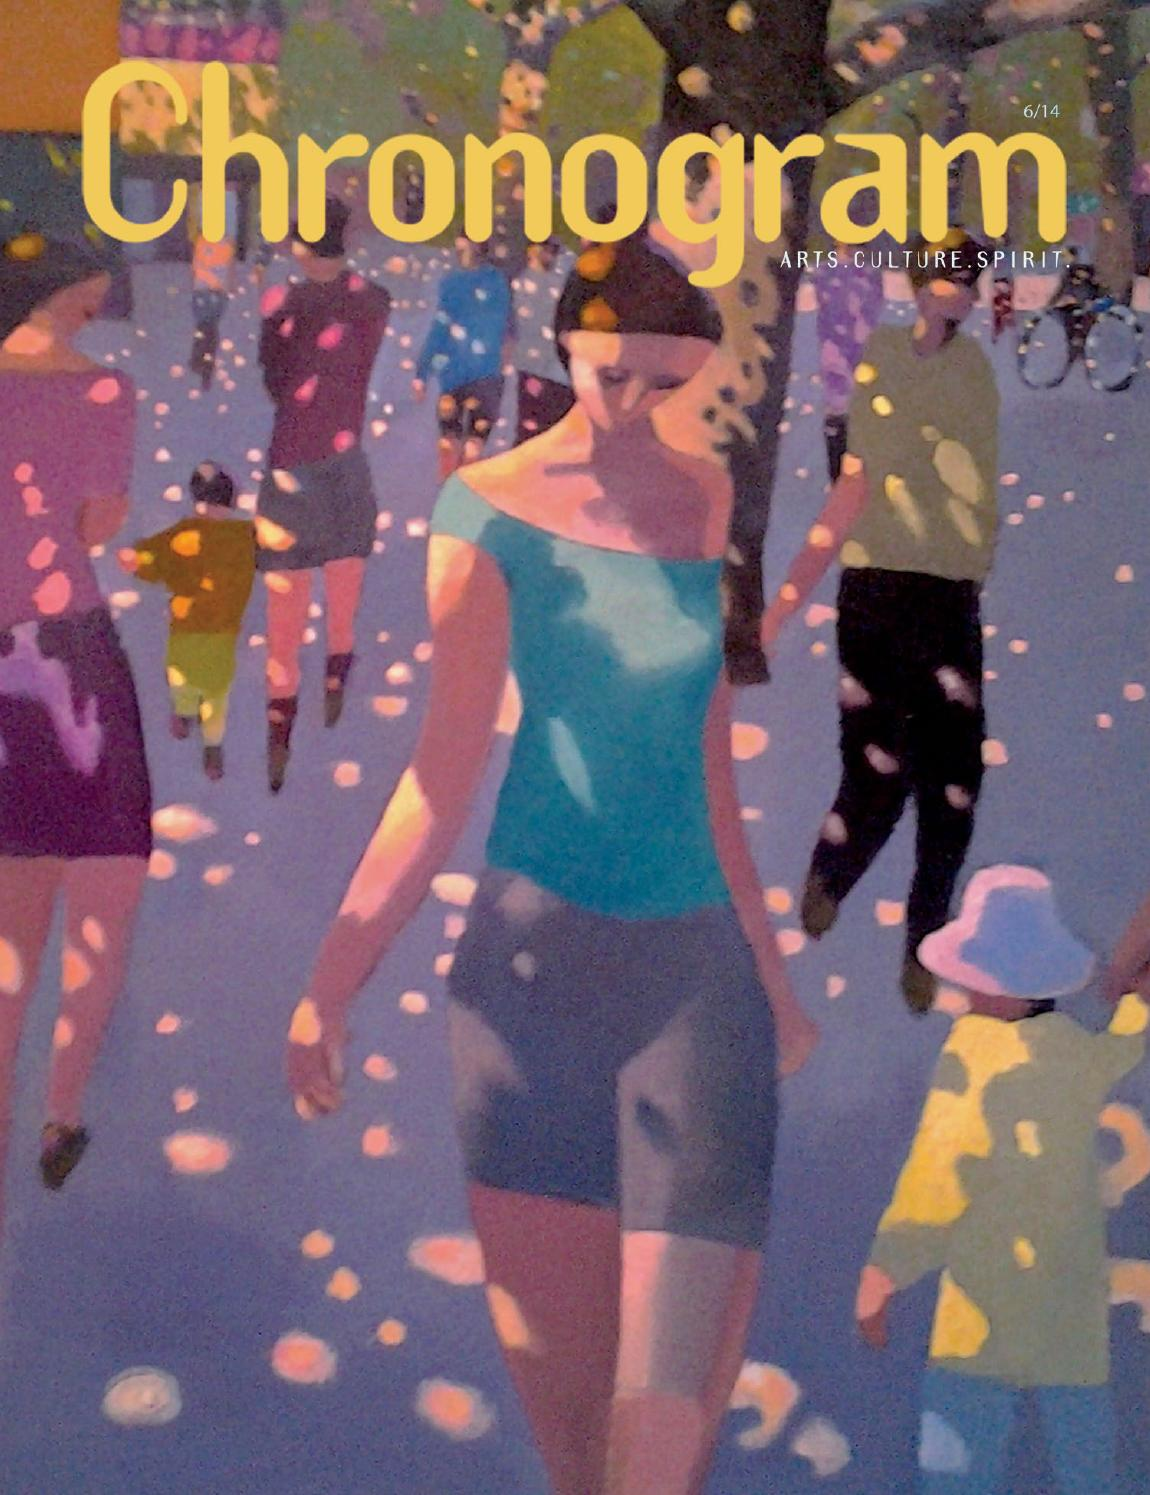 June 2014 Chronogram by Chronogram - issuu 8c27fe1be8d